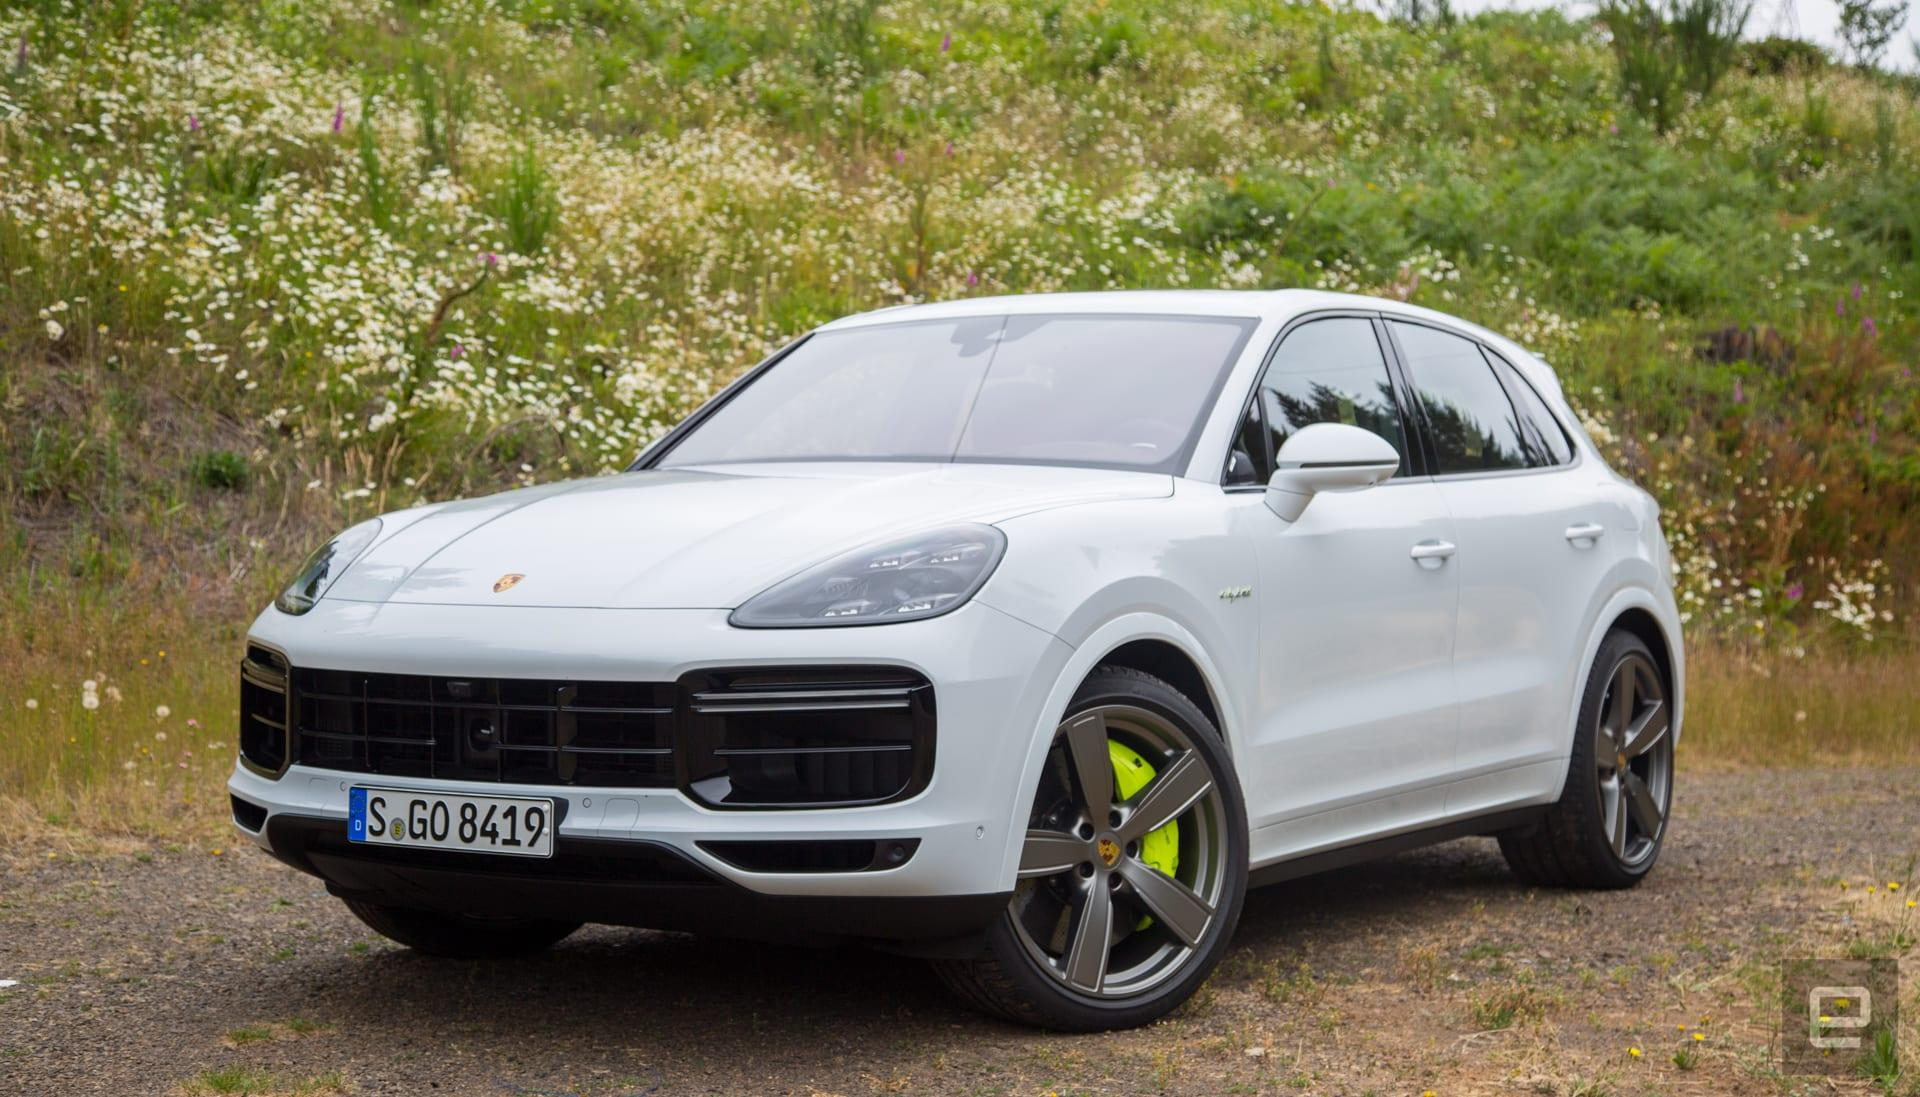 Porsche S Cayenne Turbo S E Hybrid Makes A Quick Suv Even Quicker Engadget